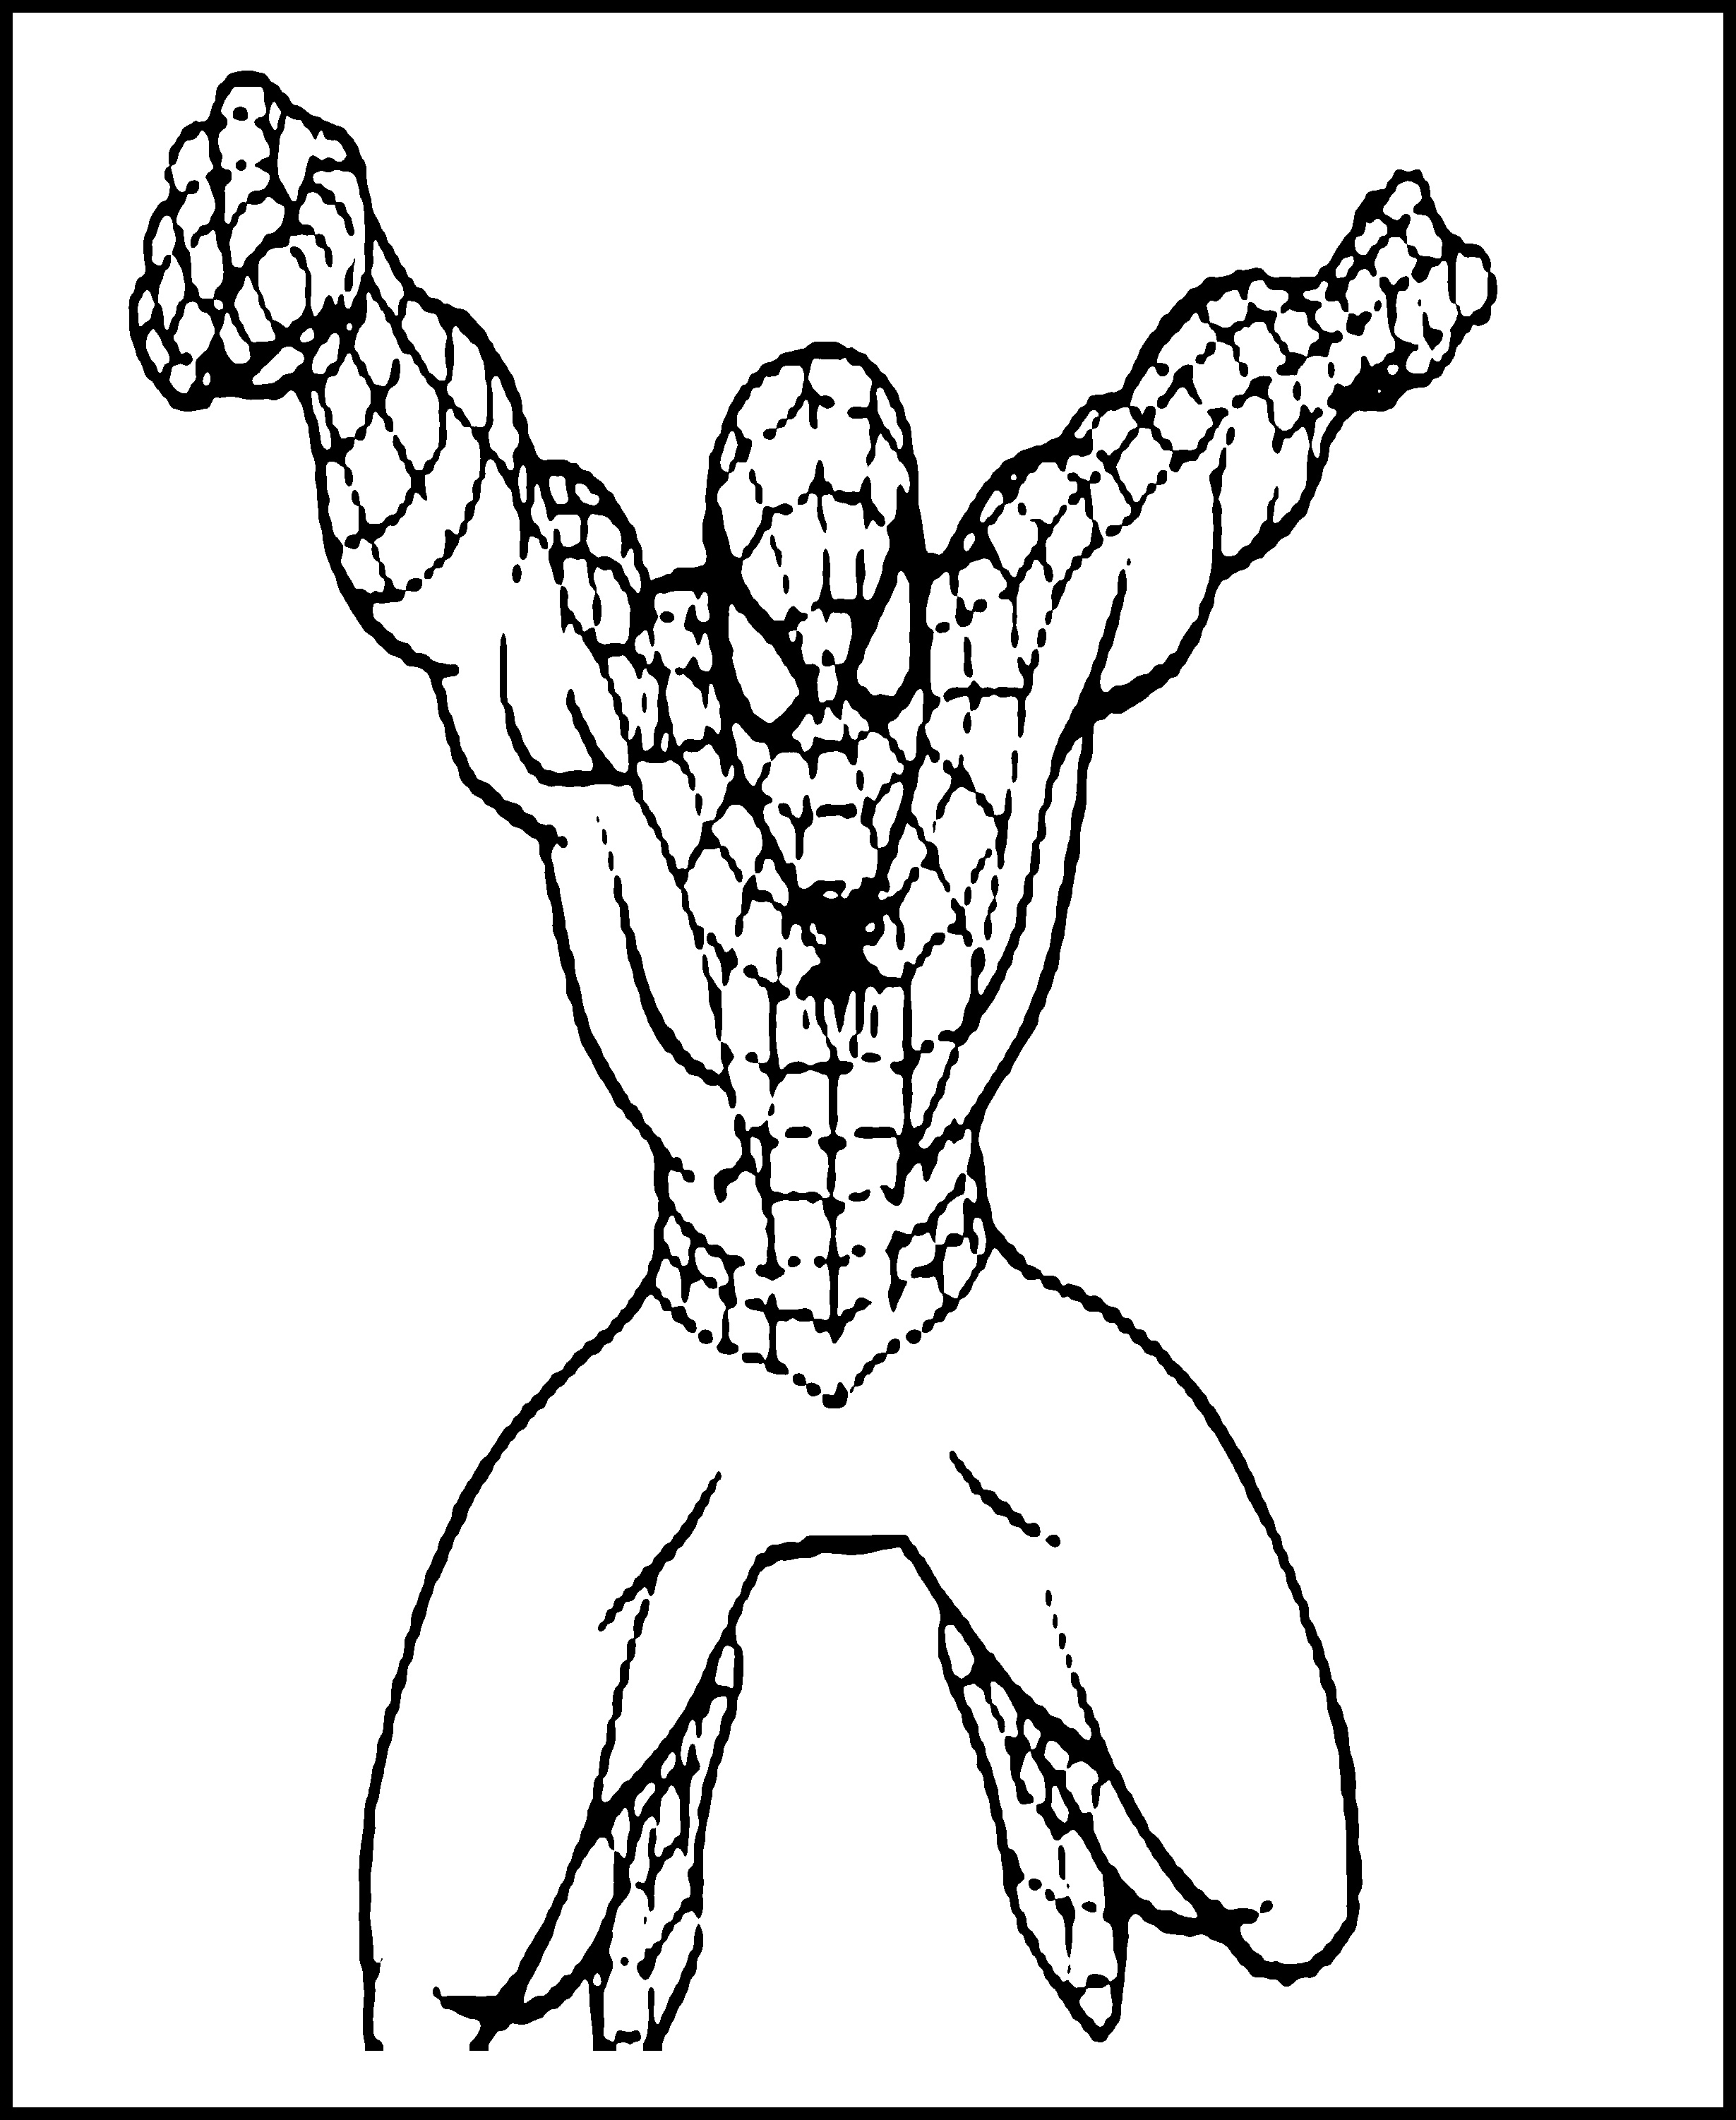 spiderman coloring pages to print out - Colouring Pages To Print Off